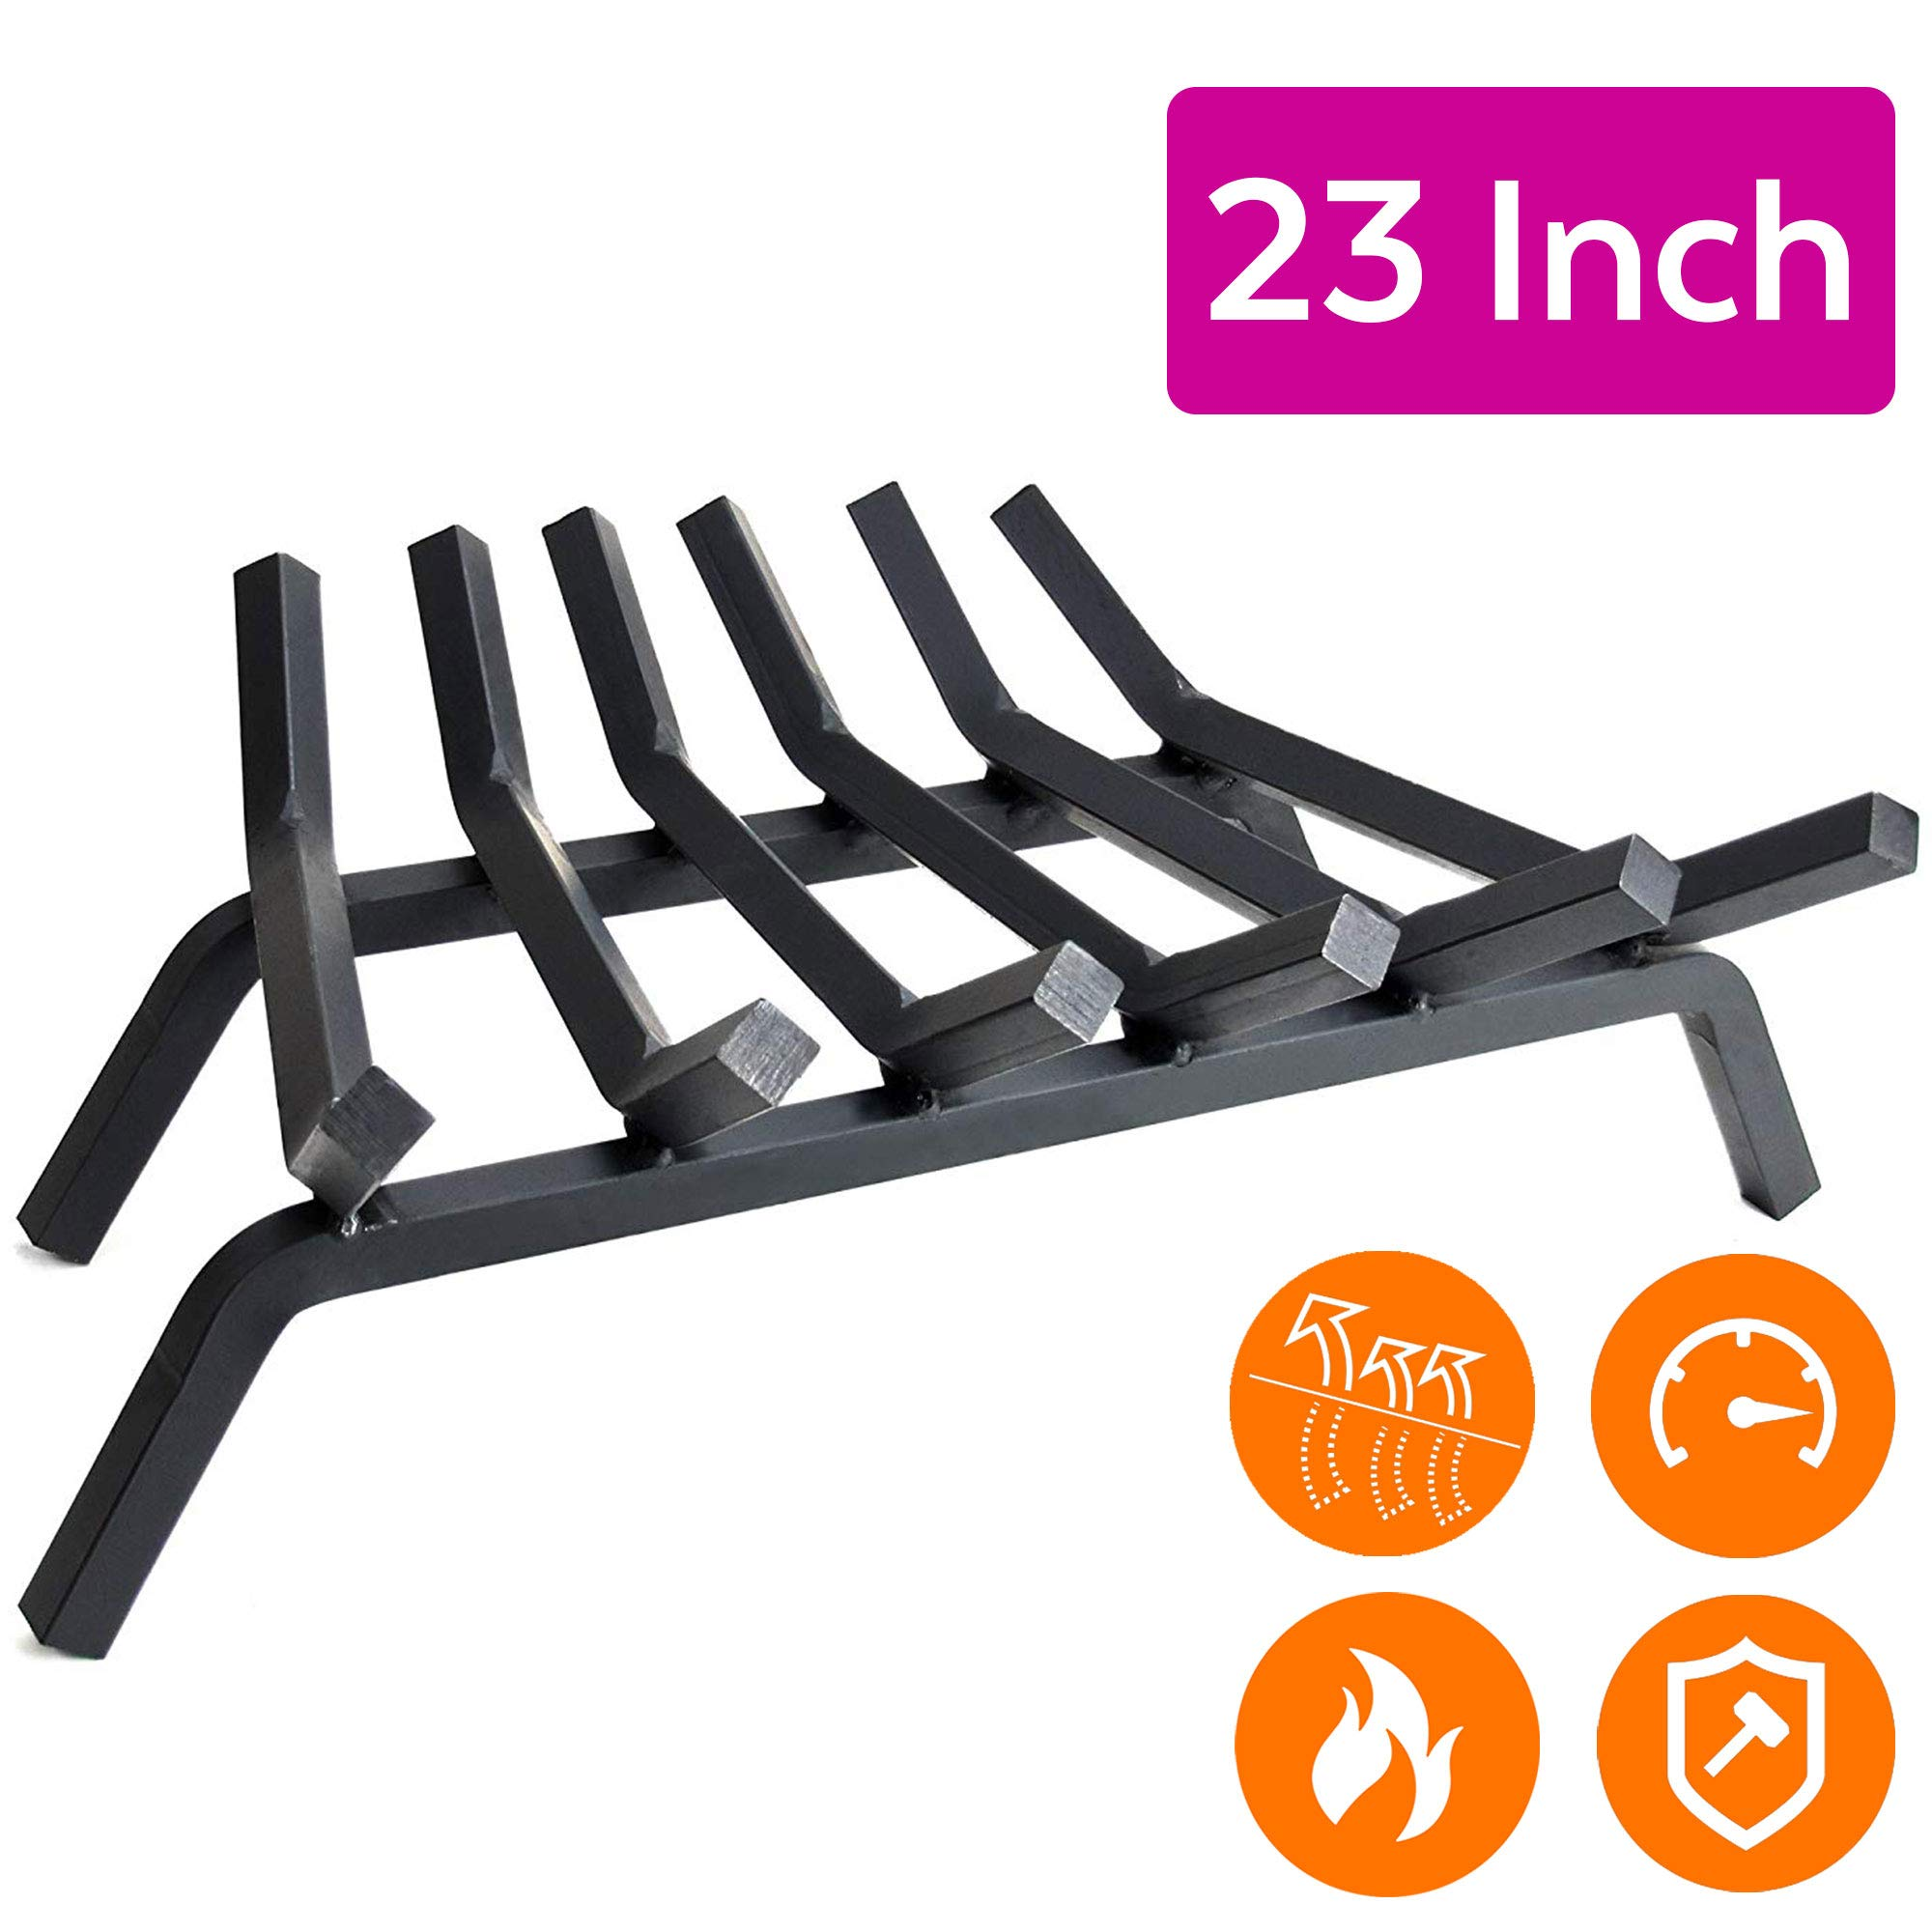 """Fireplace Log Grate 23 inch - 6 Bar Fire Grates - Heavy Duty 3/4"""" Wide Solid Steel - For Indoor Chimney Hearth Outdoor Fire Place Kindling Tool Pit Wrought Iron Wood Stove Firewood Burning Rack Holder"""